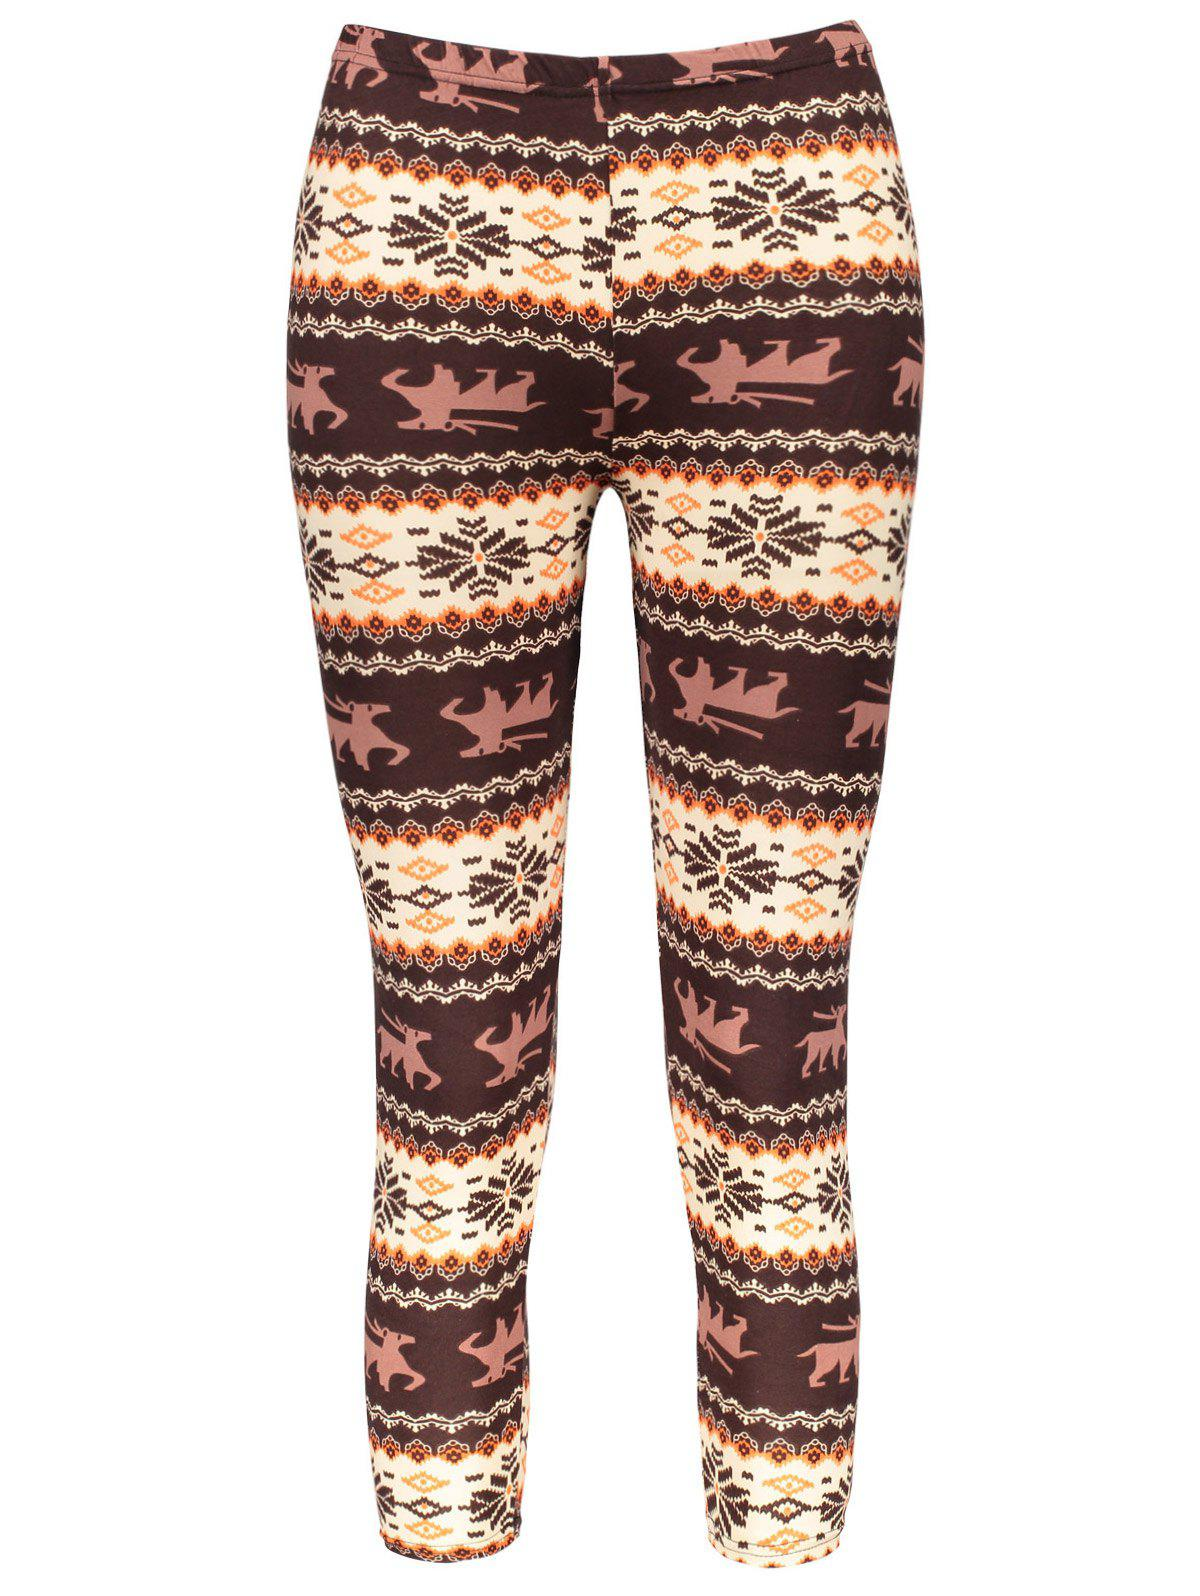 Chic Hit Color Print Stretchy Leggings For WomenWOMEN<br><br>Size: ONE SIZE(FIT SIZE XS TO M); Color: COLORMIX; Style: Fashion; Material: Polyester; Waist Type: High; Pattern Type: Print; Weight: 0.150KG; Package Contents: 1 x Leggings;